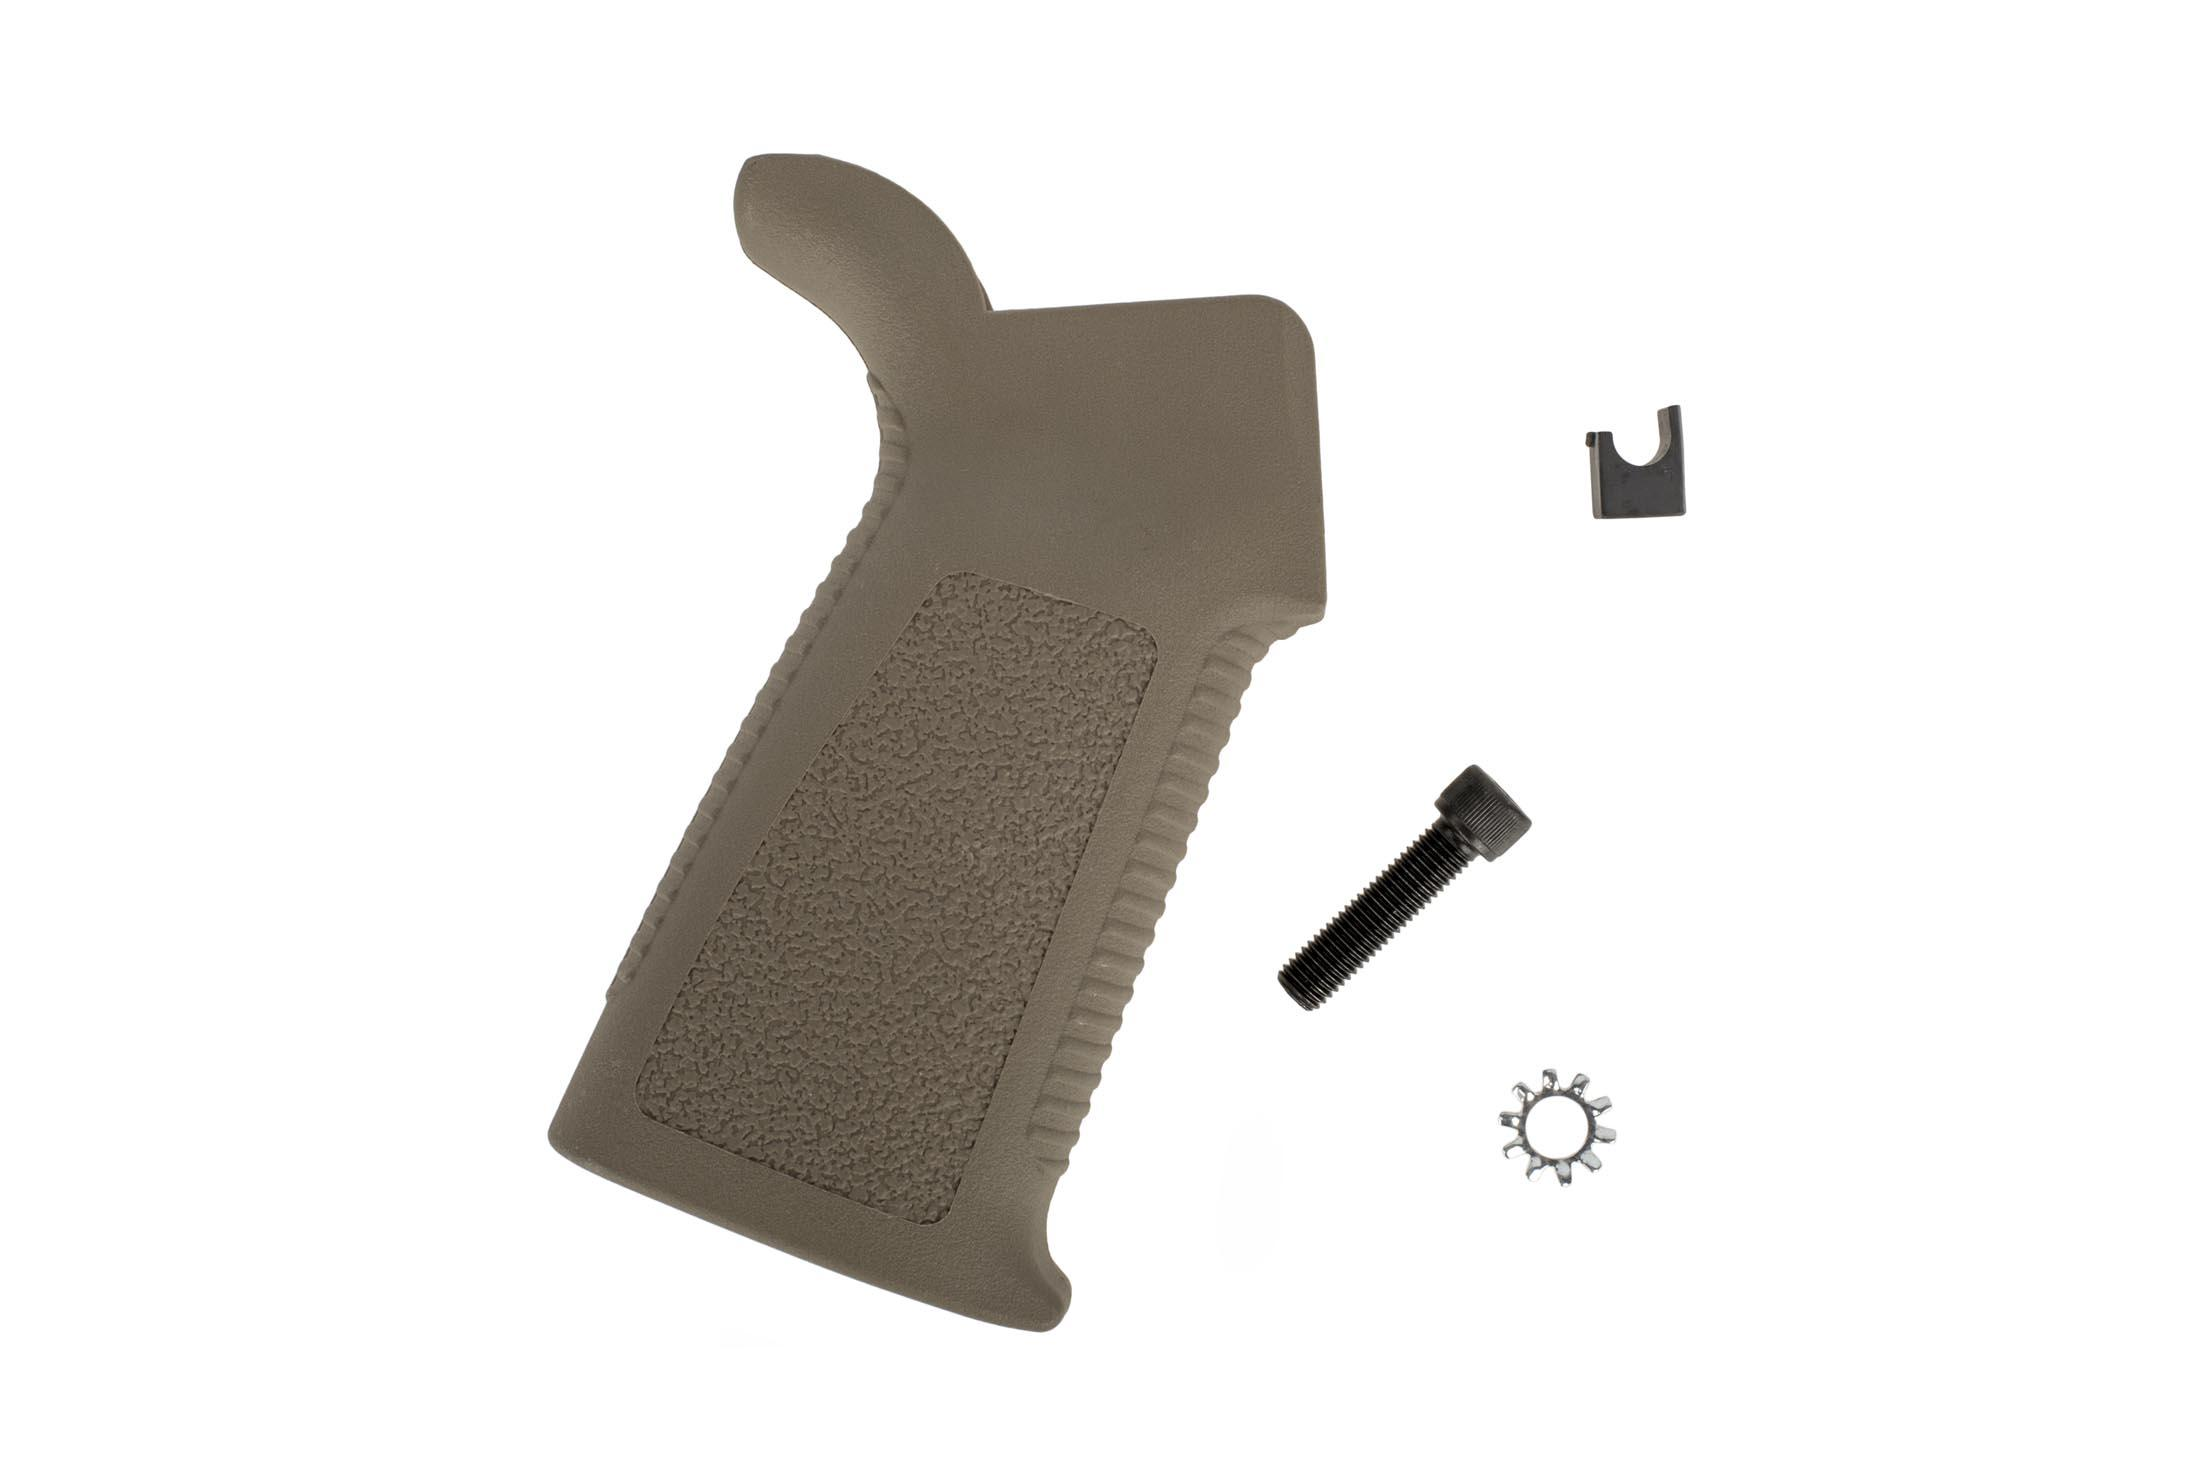 EXPO Arms FDE AR-15 RUGGED pistol grip will include the grip, grip screw, lock washer, and an ERGO Gapper!